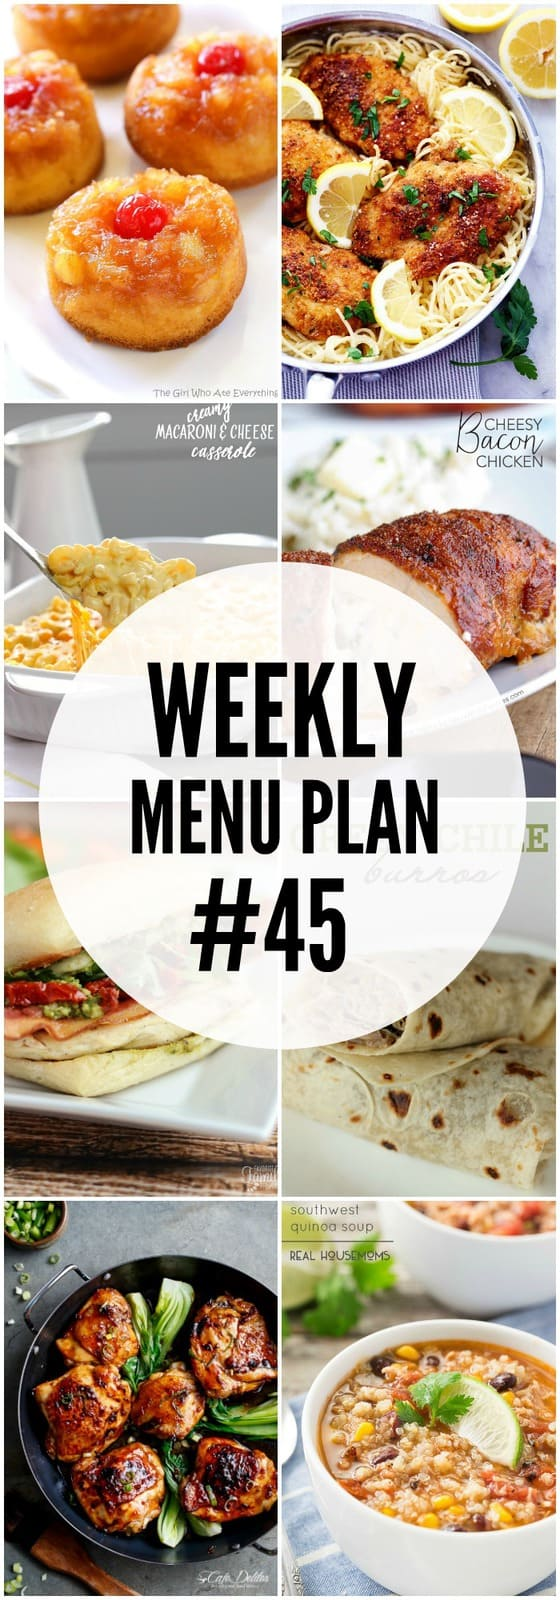 A delicious collection of recipes to help you create your weekly menu plan.